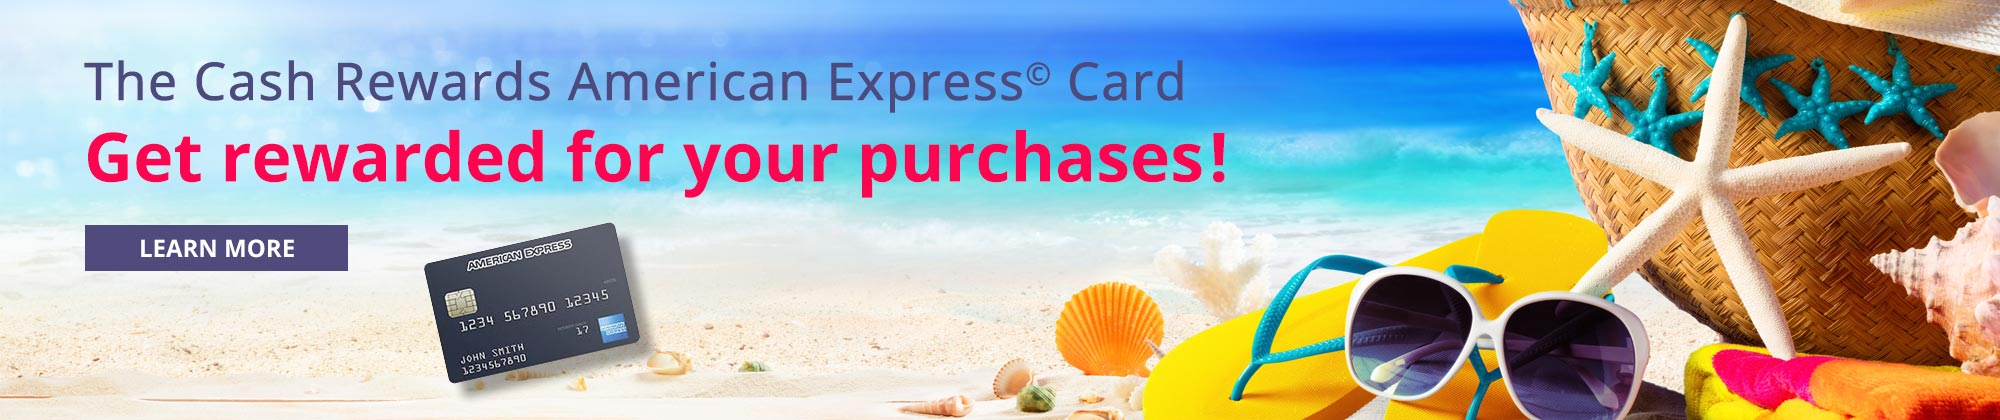 The cash rewards American Express Card.  Get rewarded for your purchases!